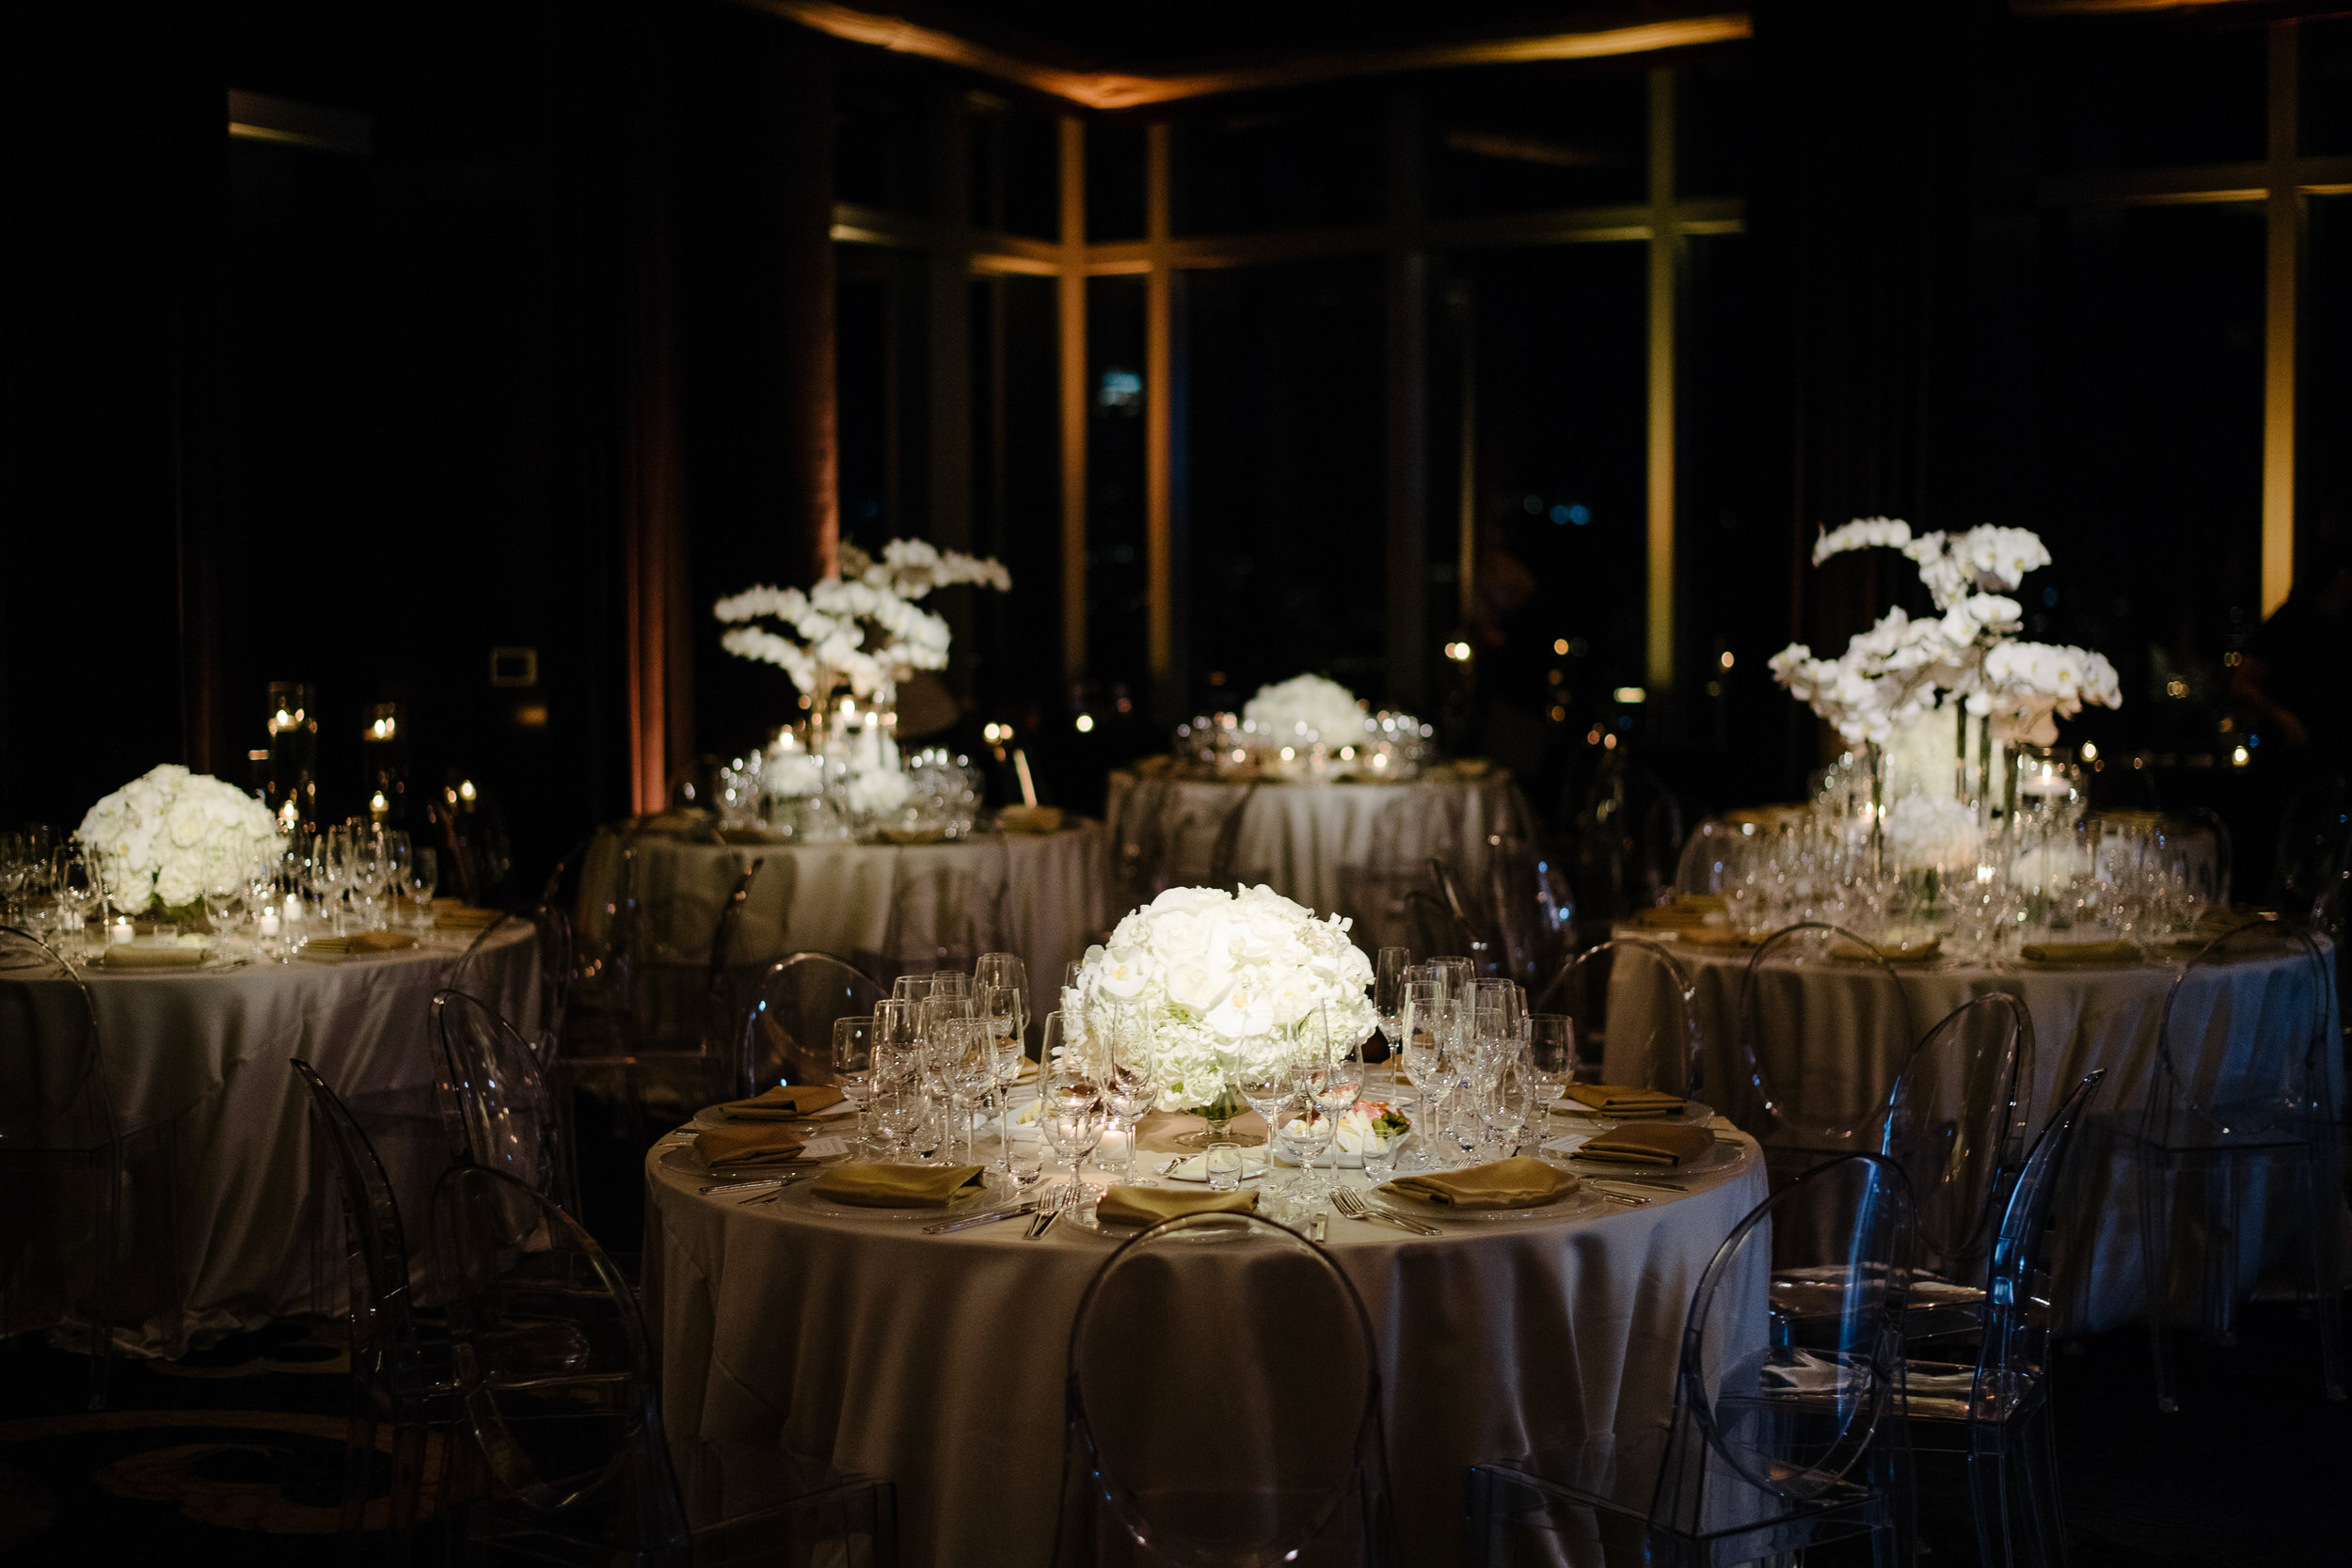 New-York-Wedding-Mandarin-Oriental-Andrea-Freeman-Events-13.jpg